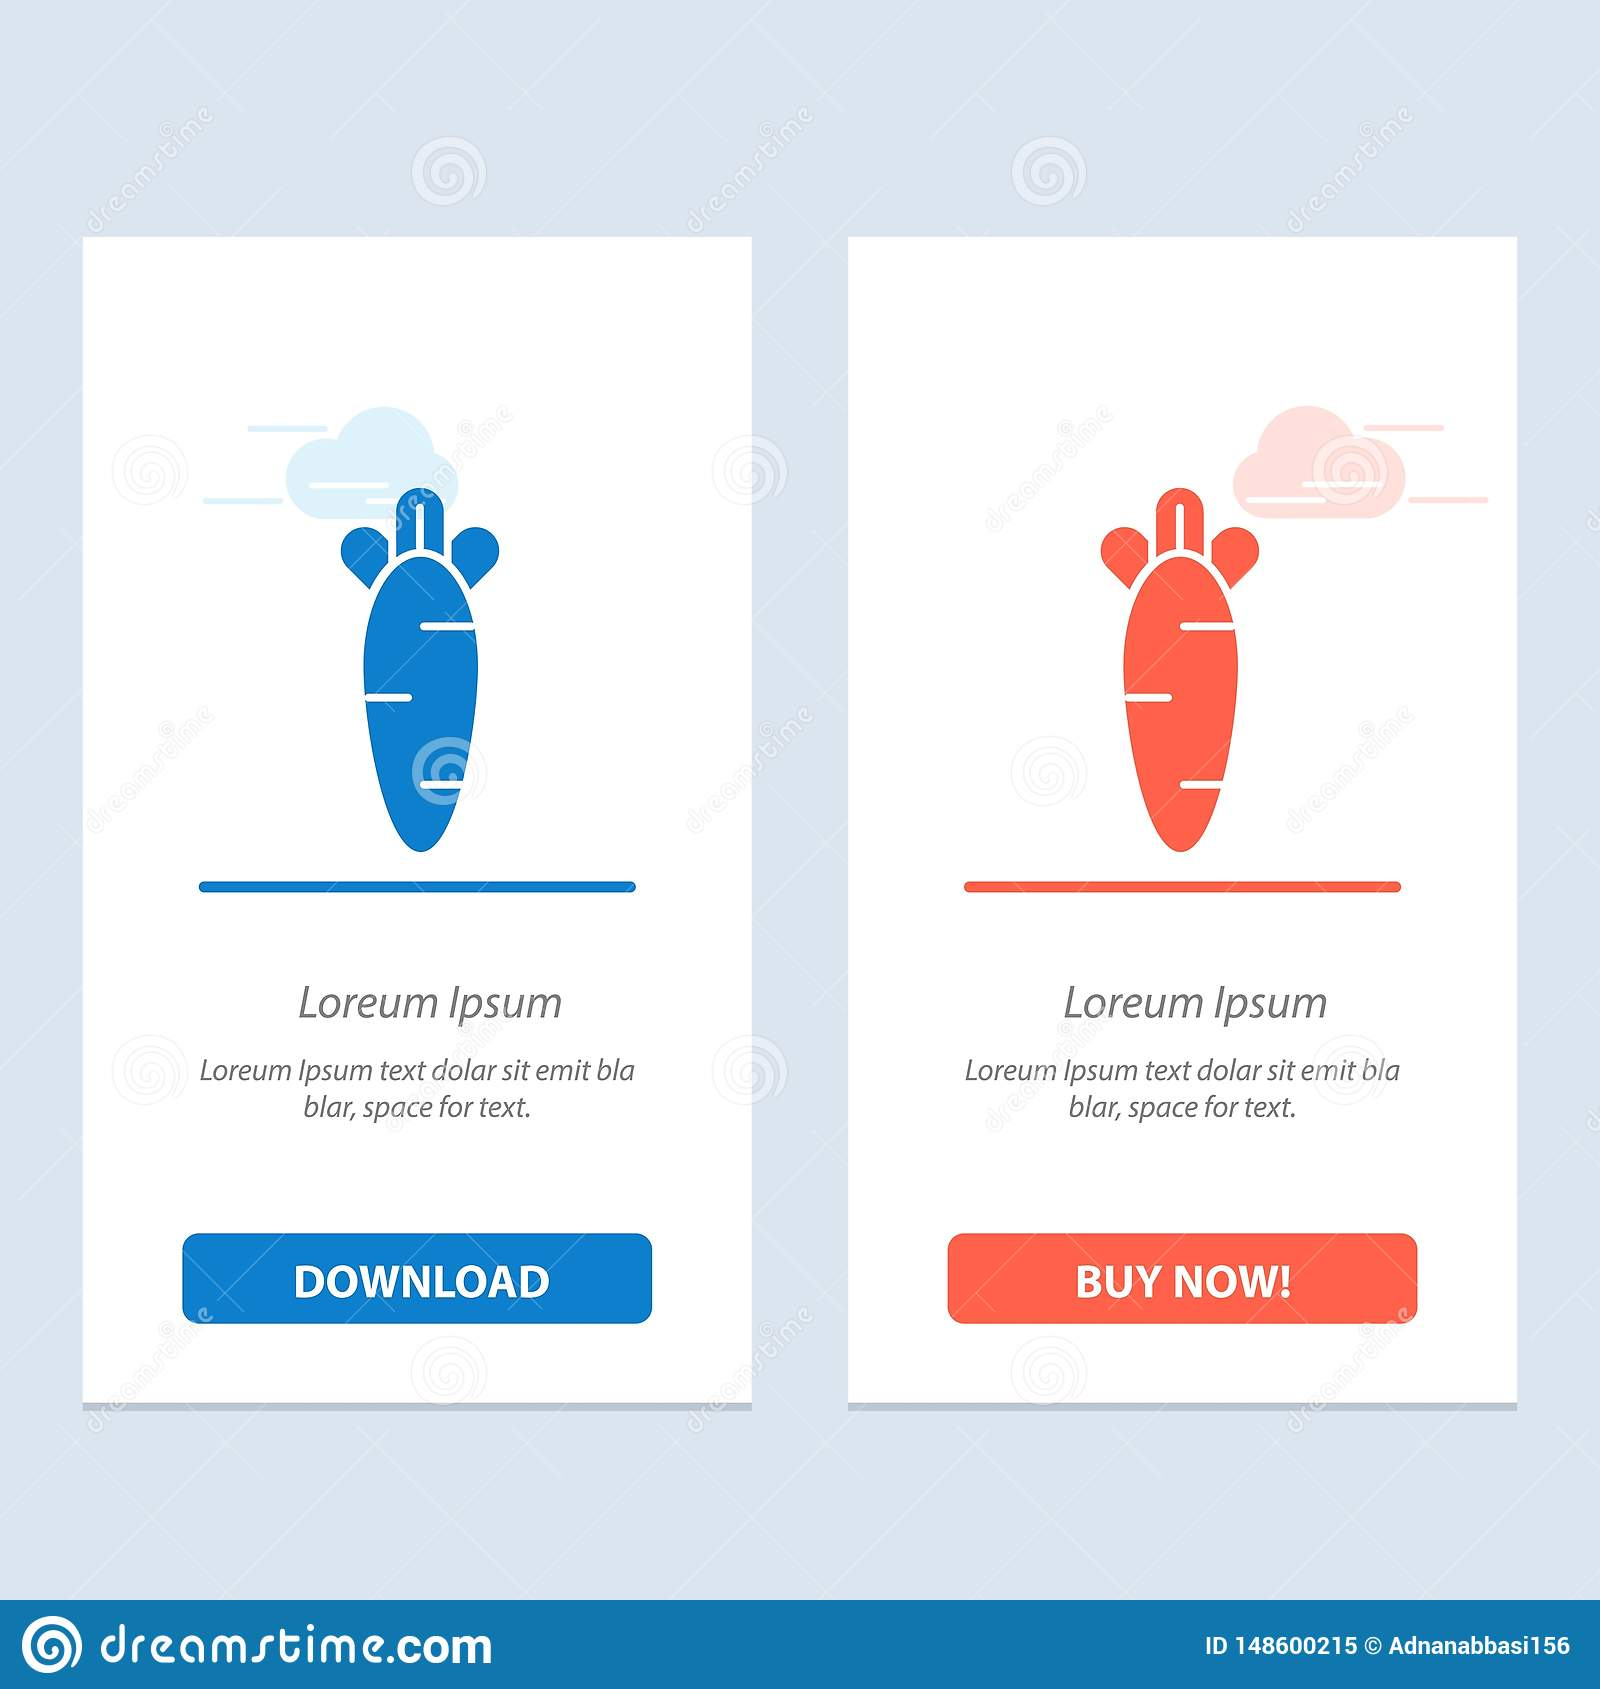 Carrot, Food, Easter, Nature  Blue and Red Download and Buy Now web Widget Card Template